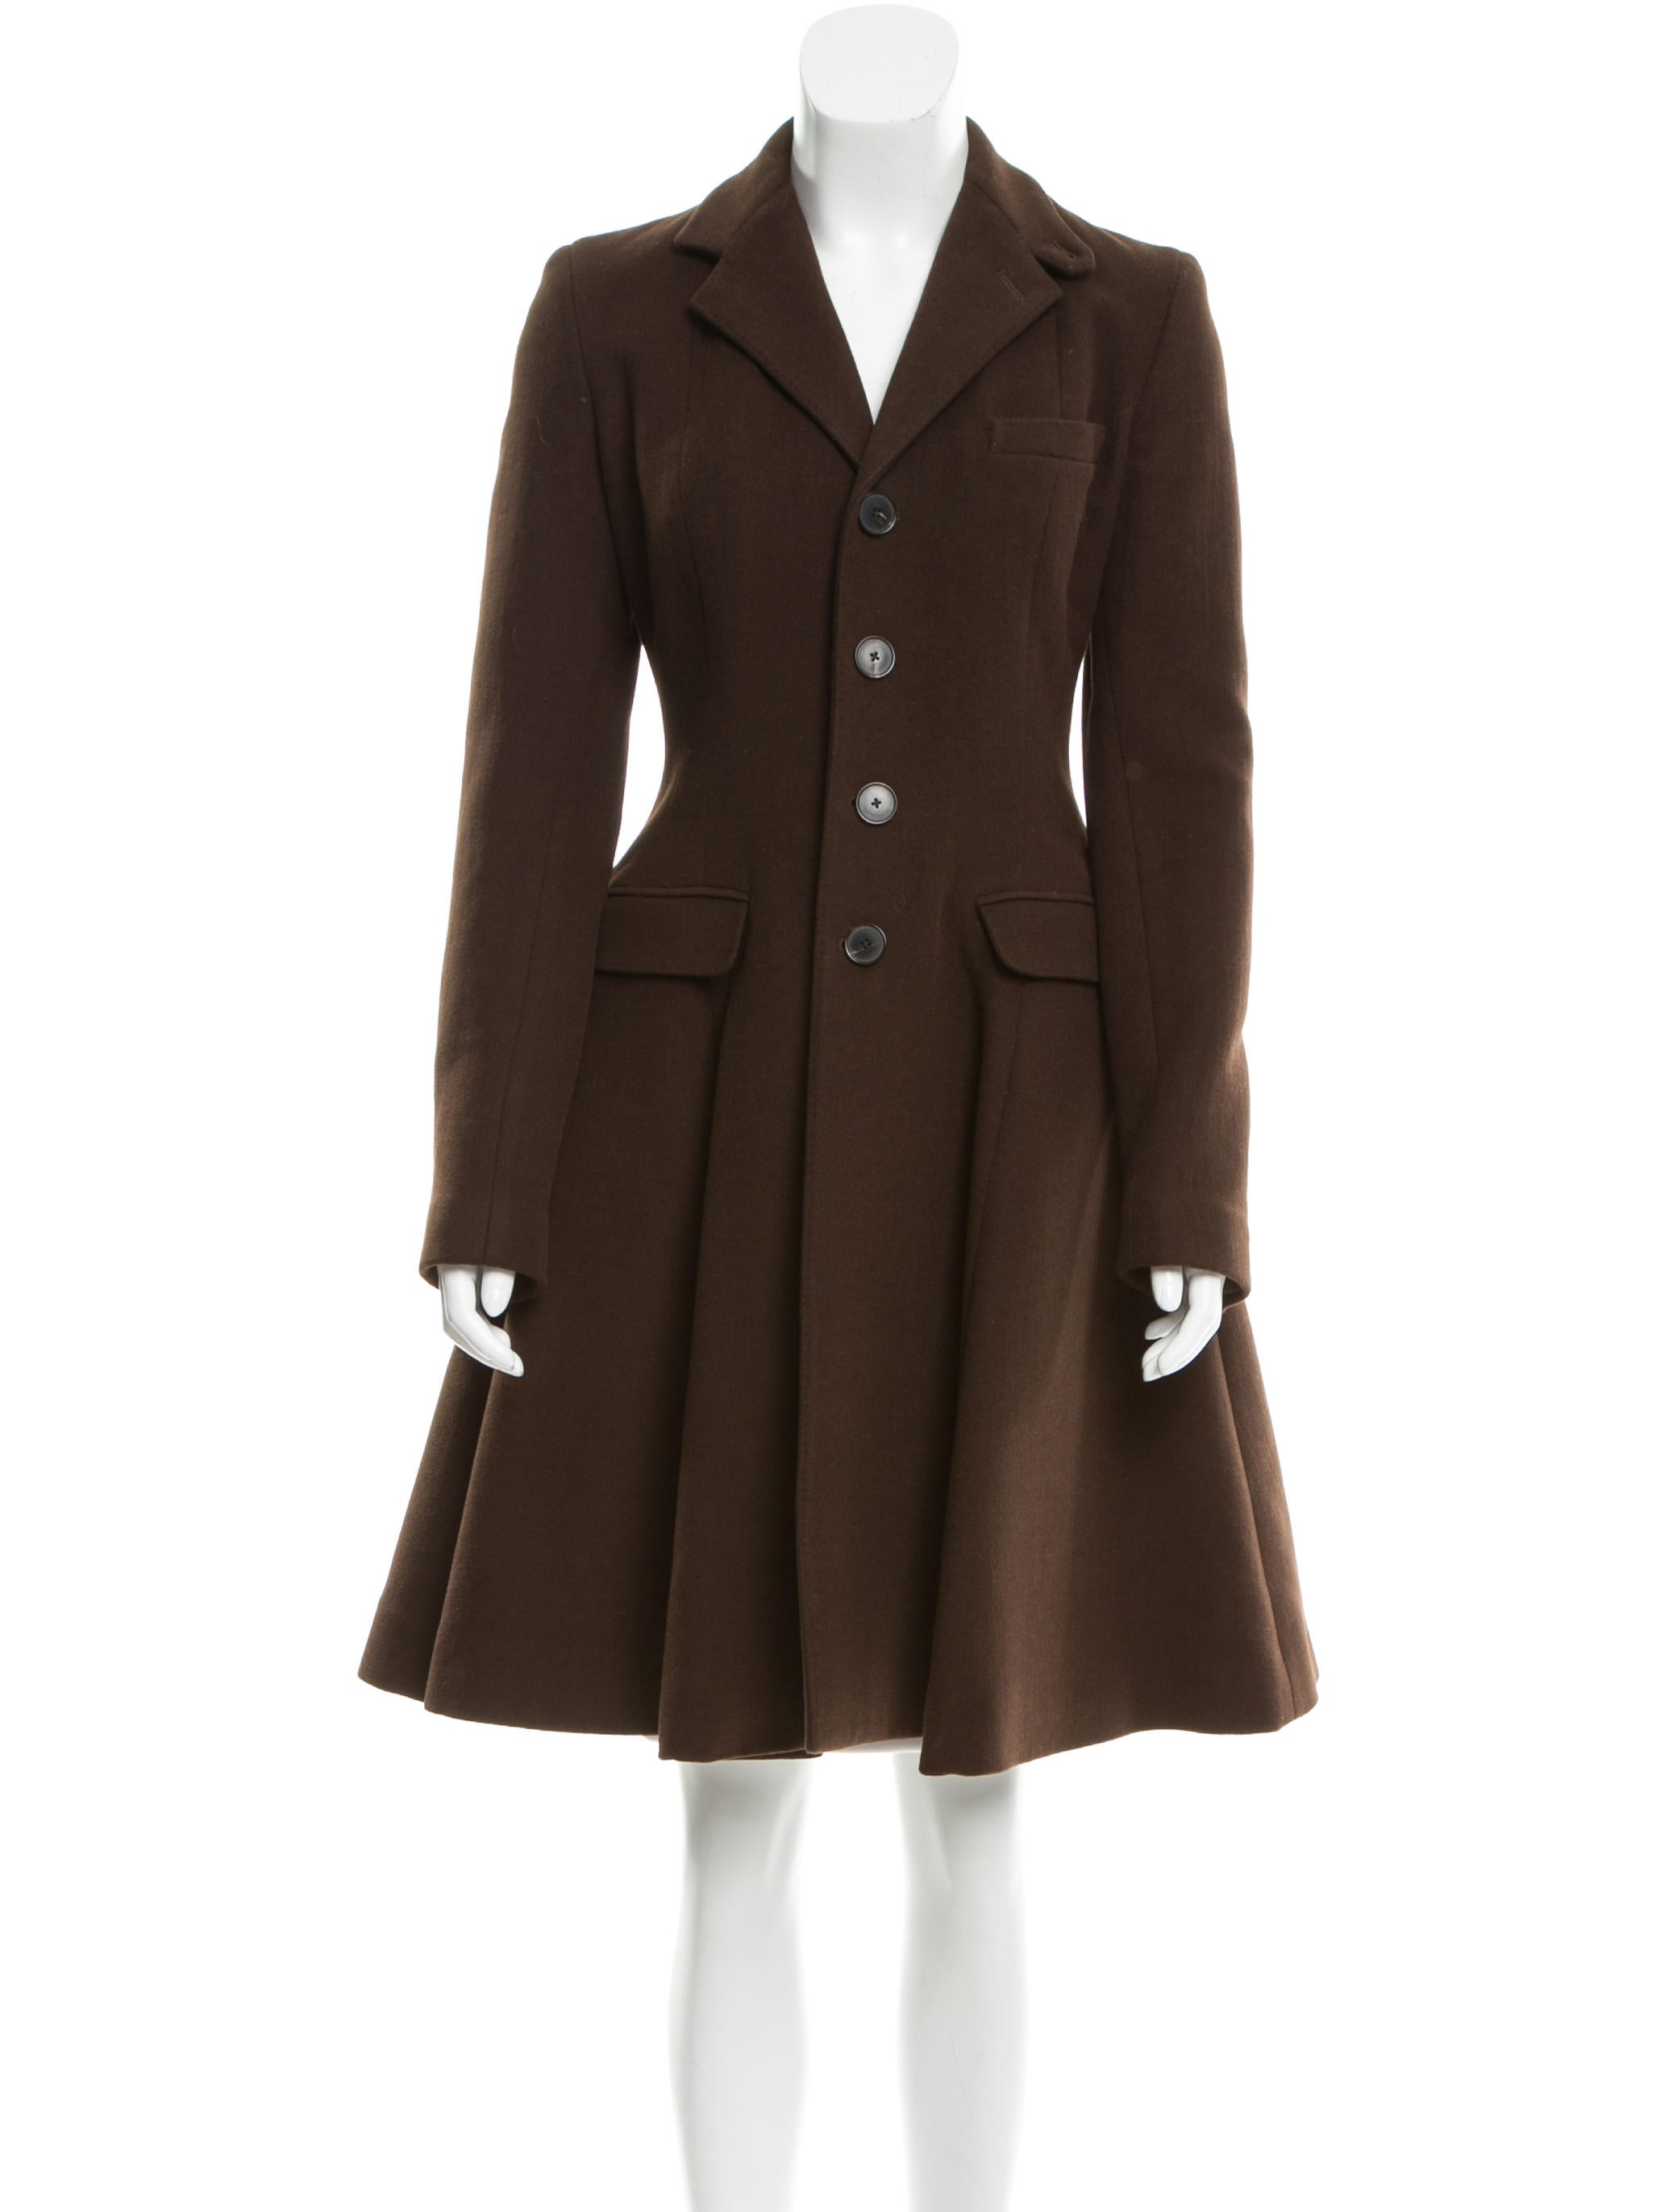 Find great deals on eBay for lapel coat. Shop with confidence.